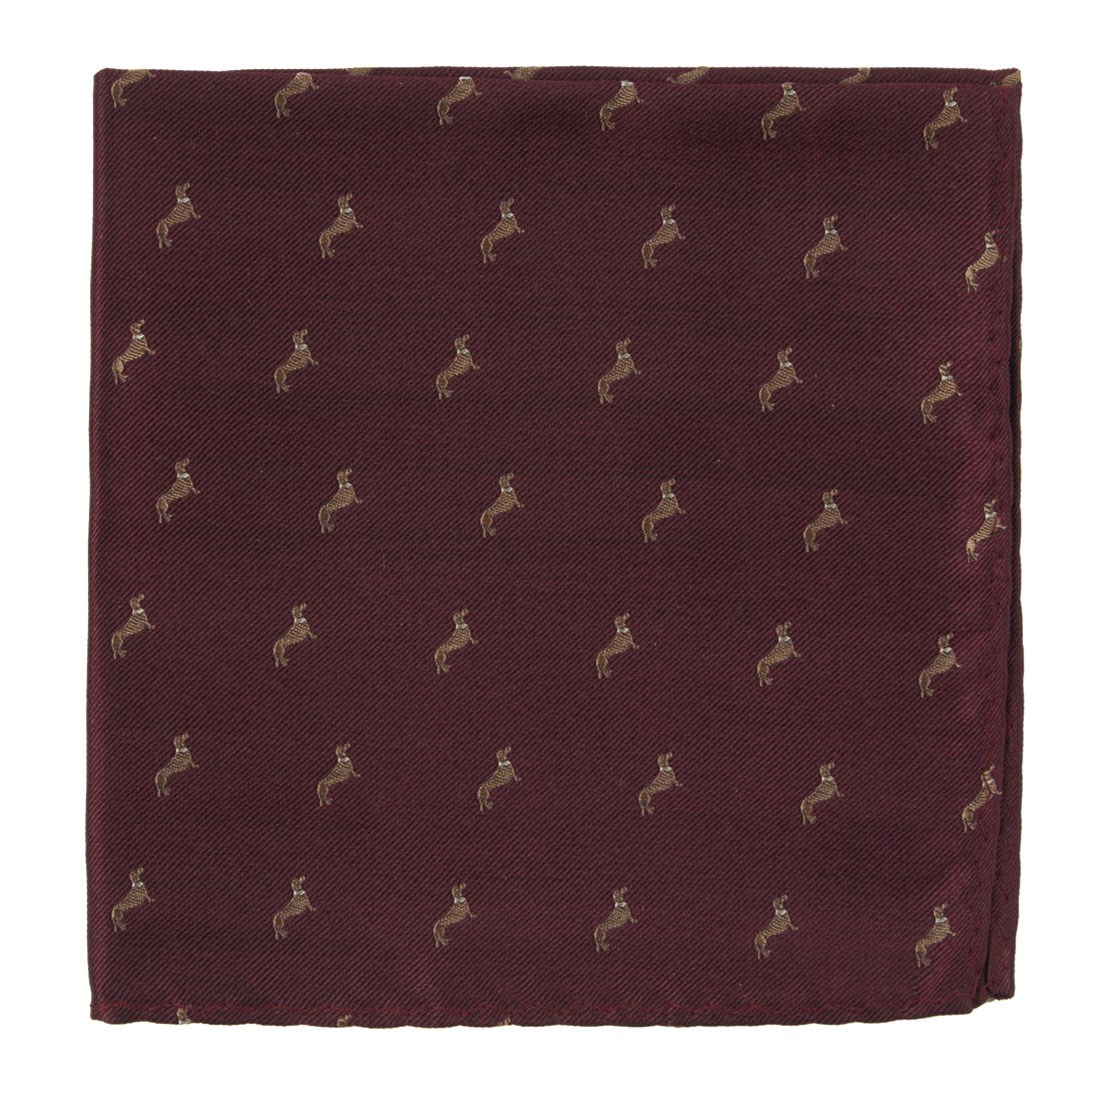 Dog Days Pocket Square in Burgundy